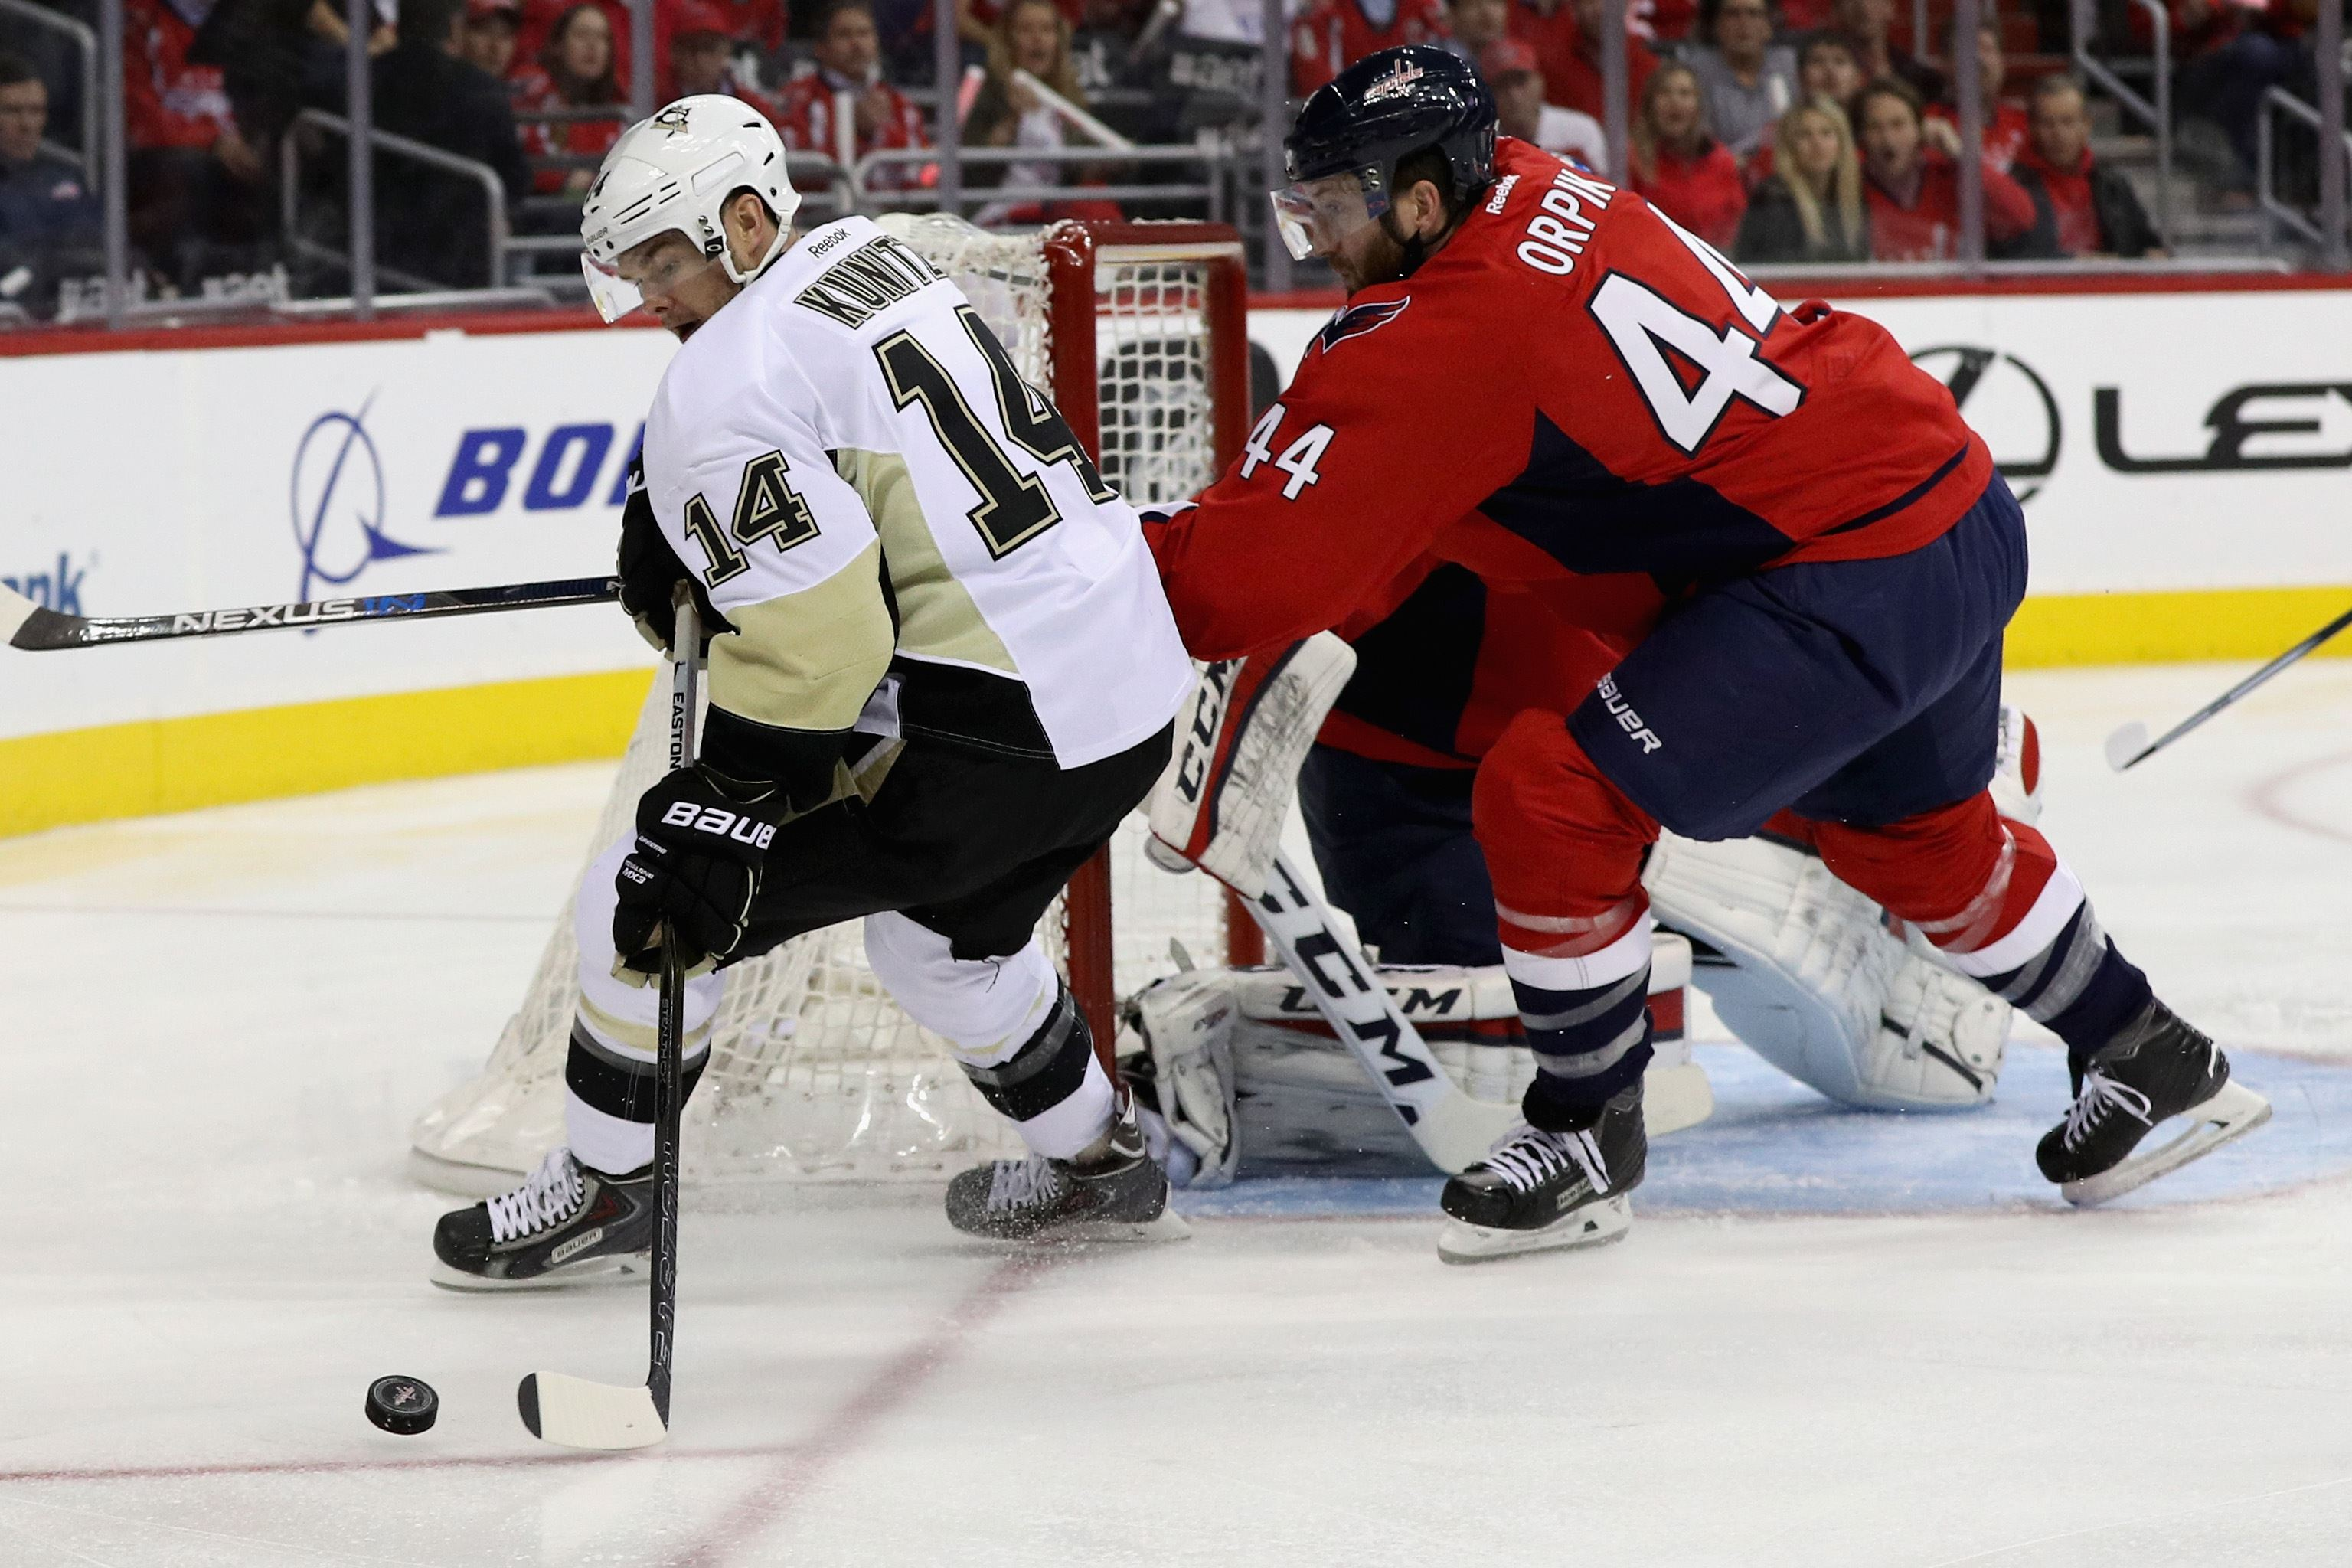 Penguins notebook: Crosby an MVP finalist; Fehr, Rust back in lineup